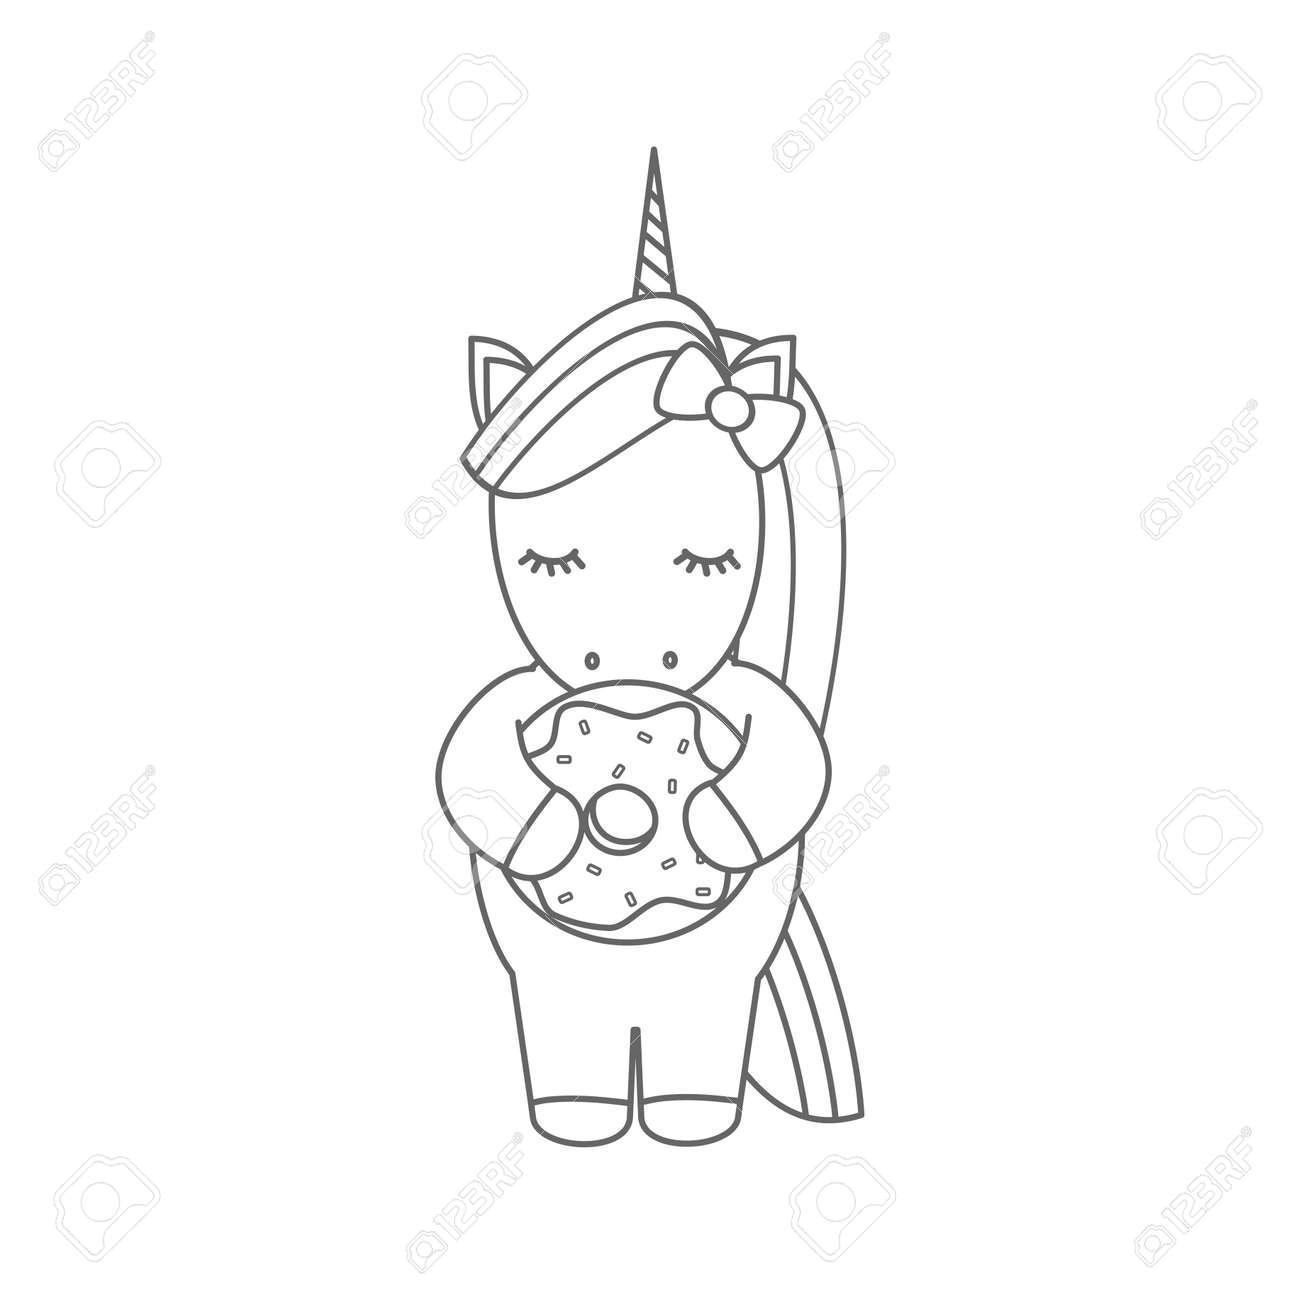 Cute Cartoon Black And White Vector Illustration With Unicorn